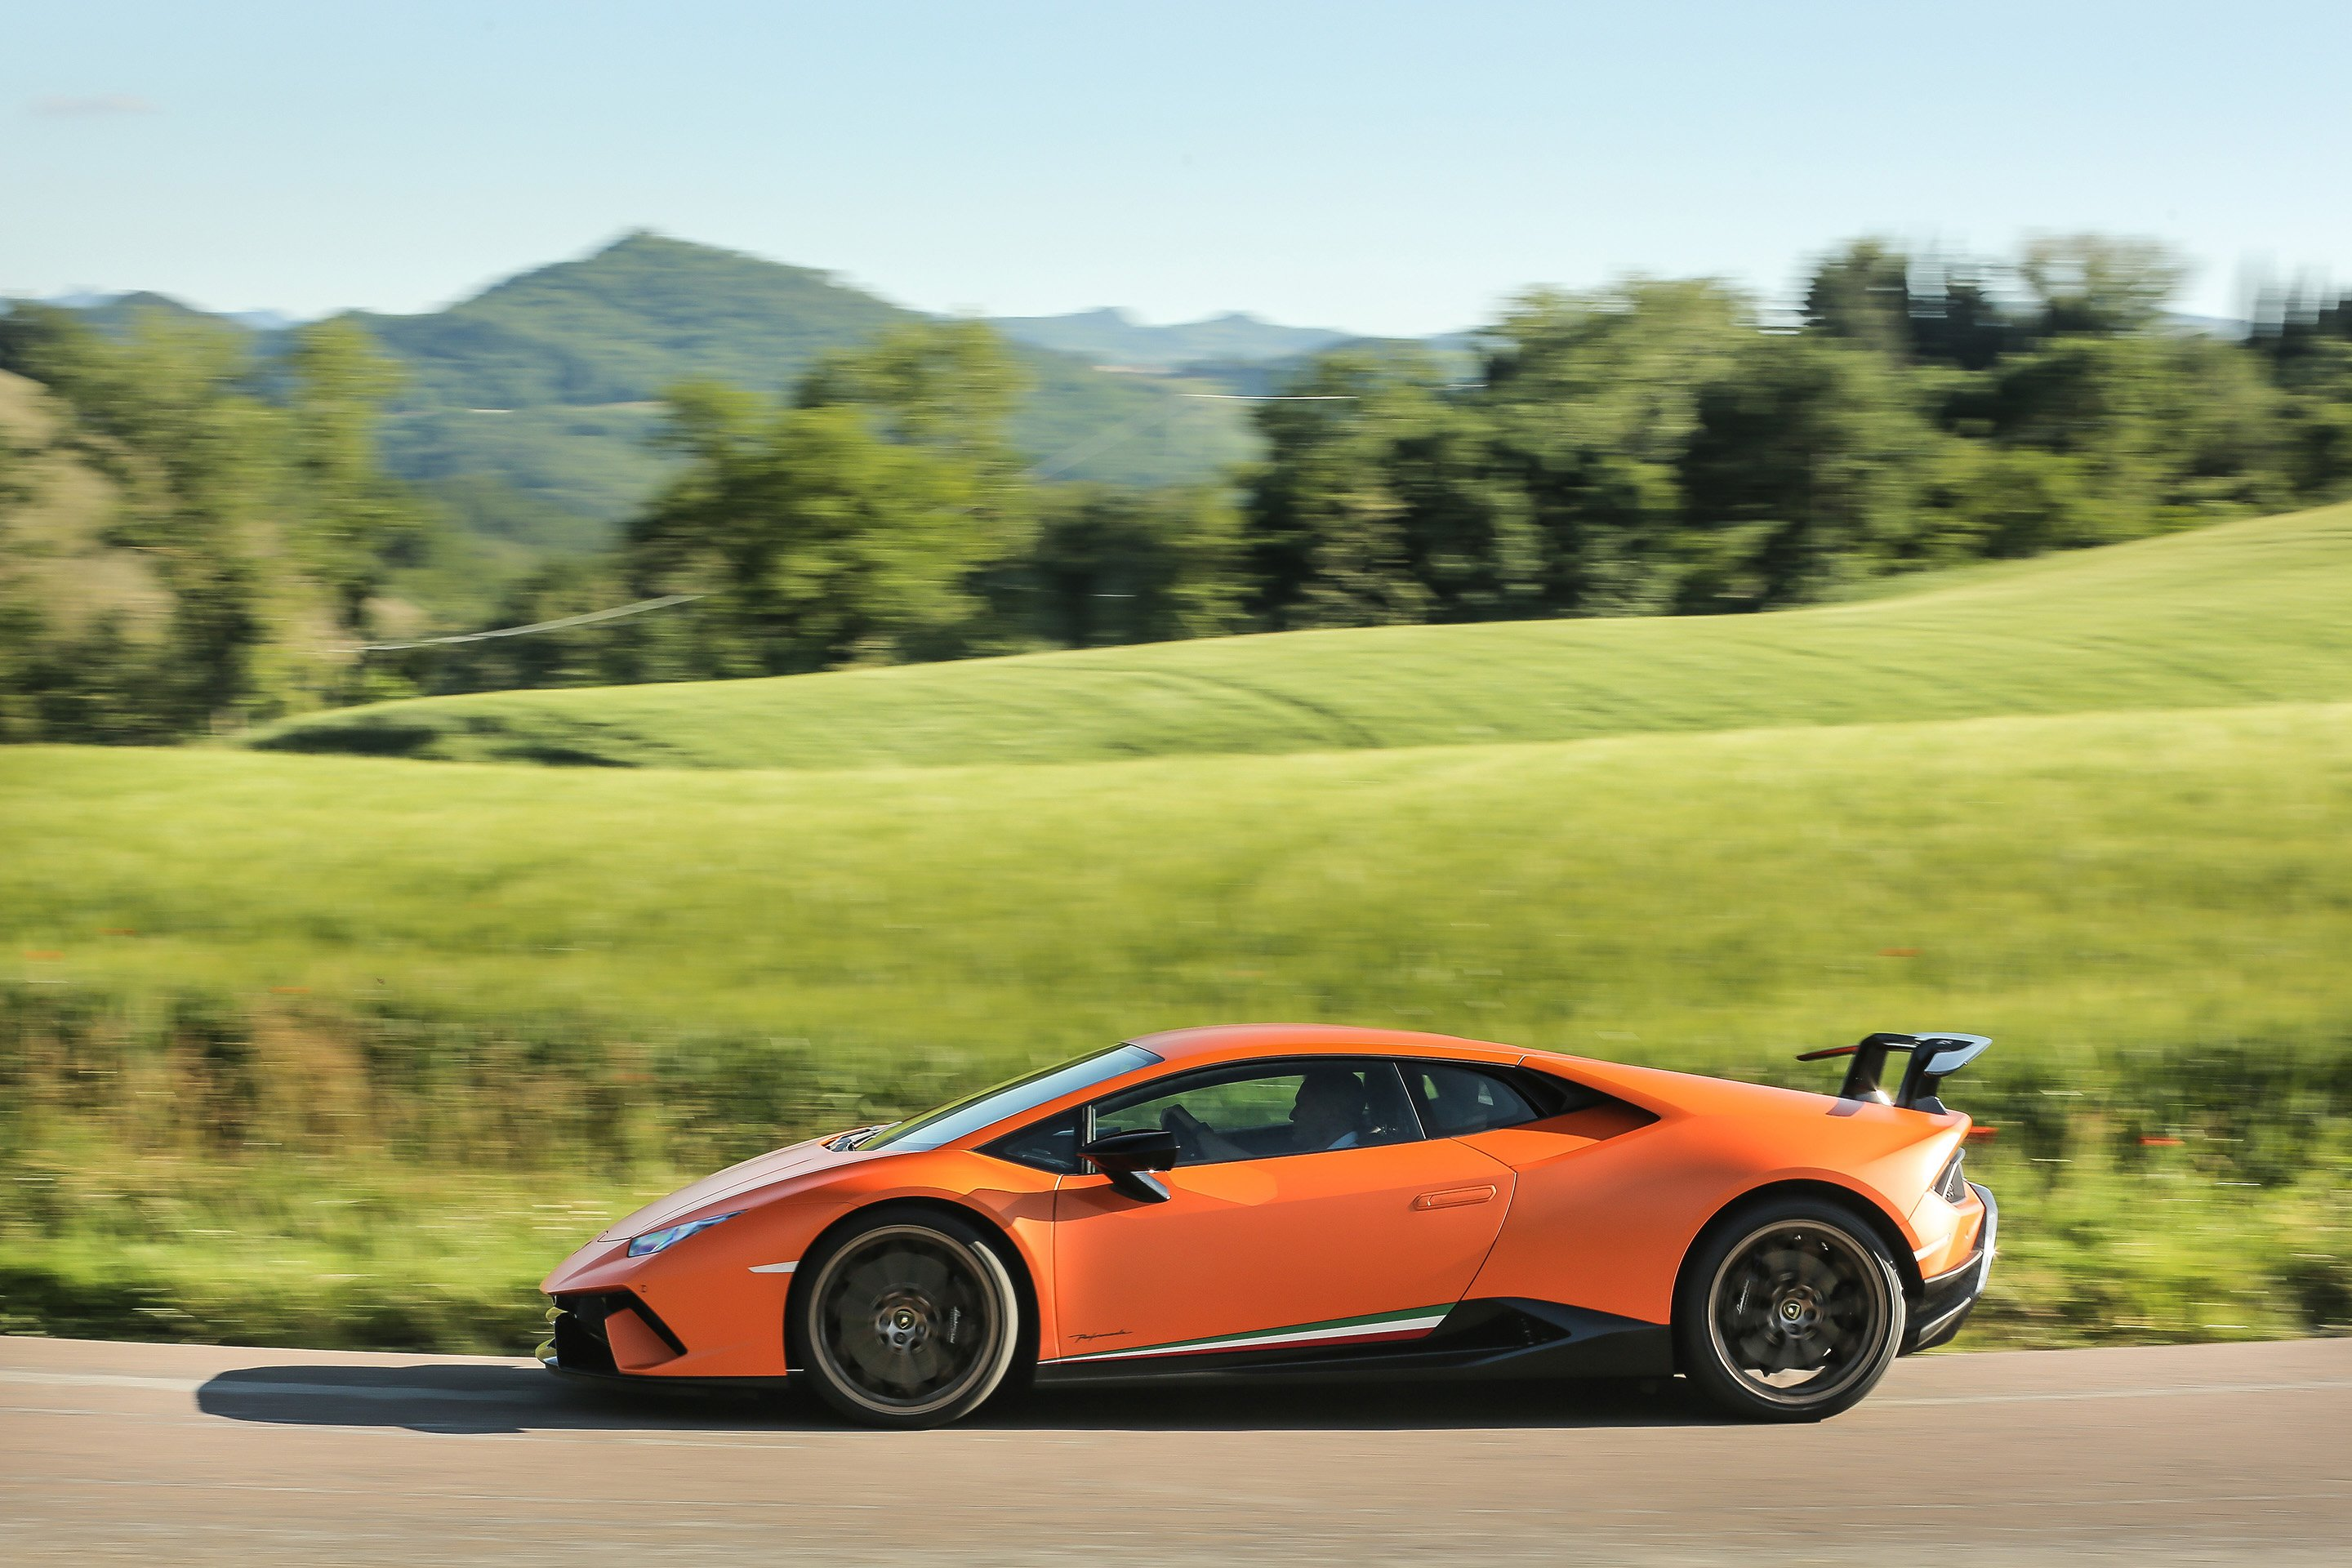 2017 Lamborghini Huracan Performante review | CarAdvice